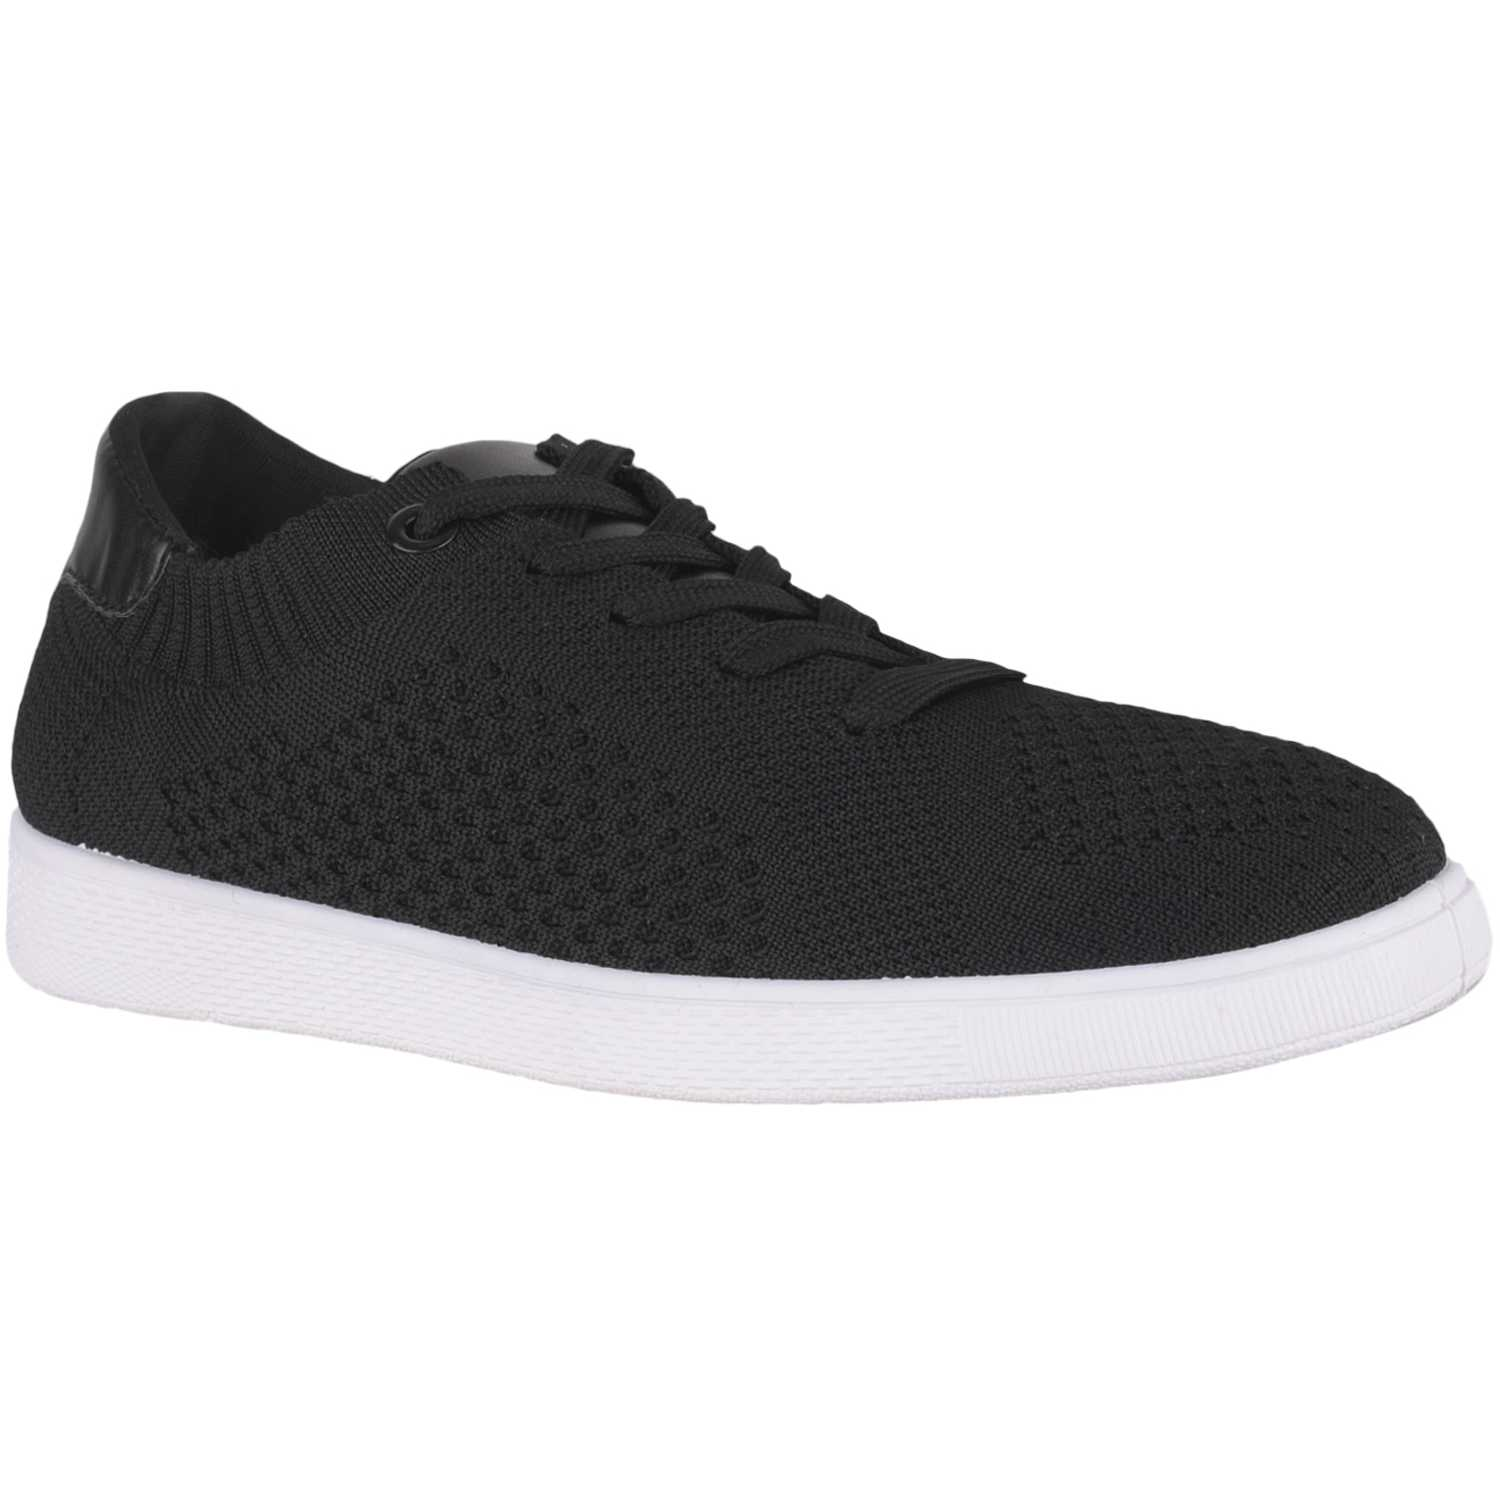 Just4u ZC 151 Negro Zapatillas Fashion